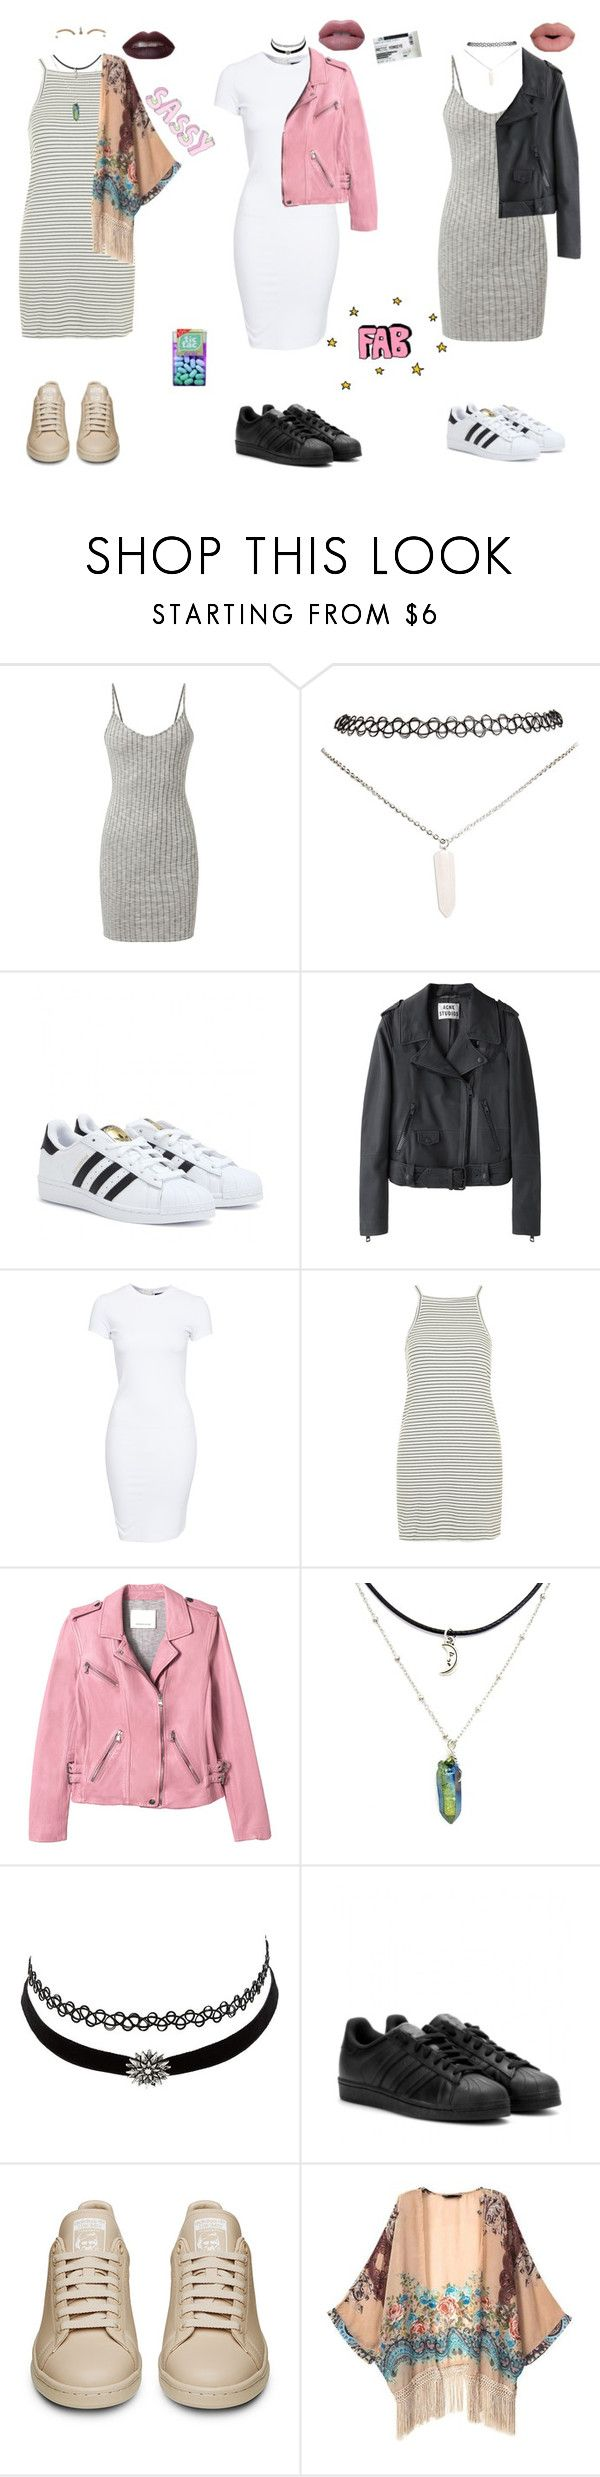 """""""How I Style Adidas Shoes"""" by stellaluna899 ❤ liked on Polyvore featuring Wet Seal, adidas, Sephora Collection, Acne Studios, SELECTED, Topshop, Rebecca Taylor, Charlotte Russe, Retrò and MINX"""